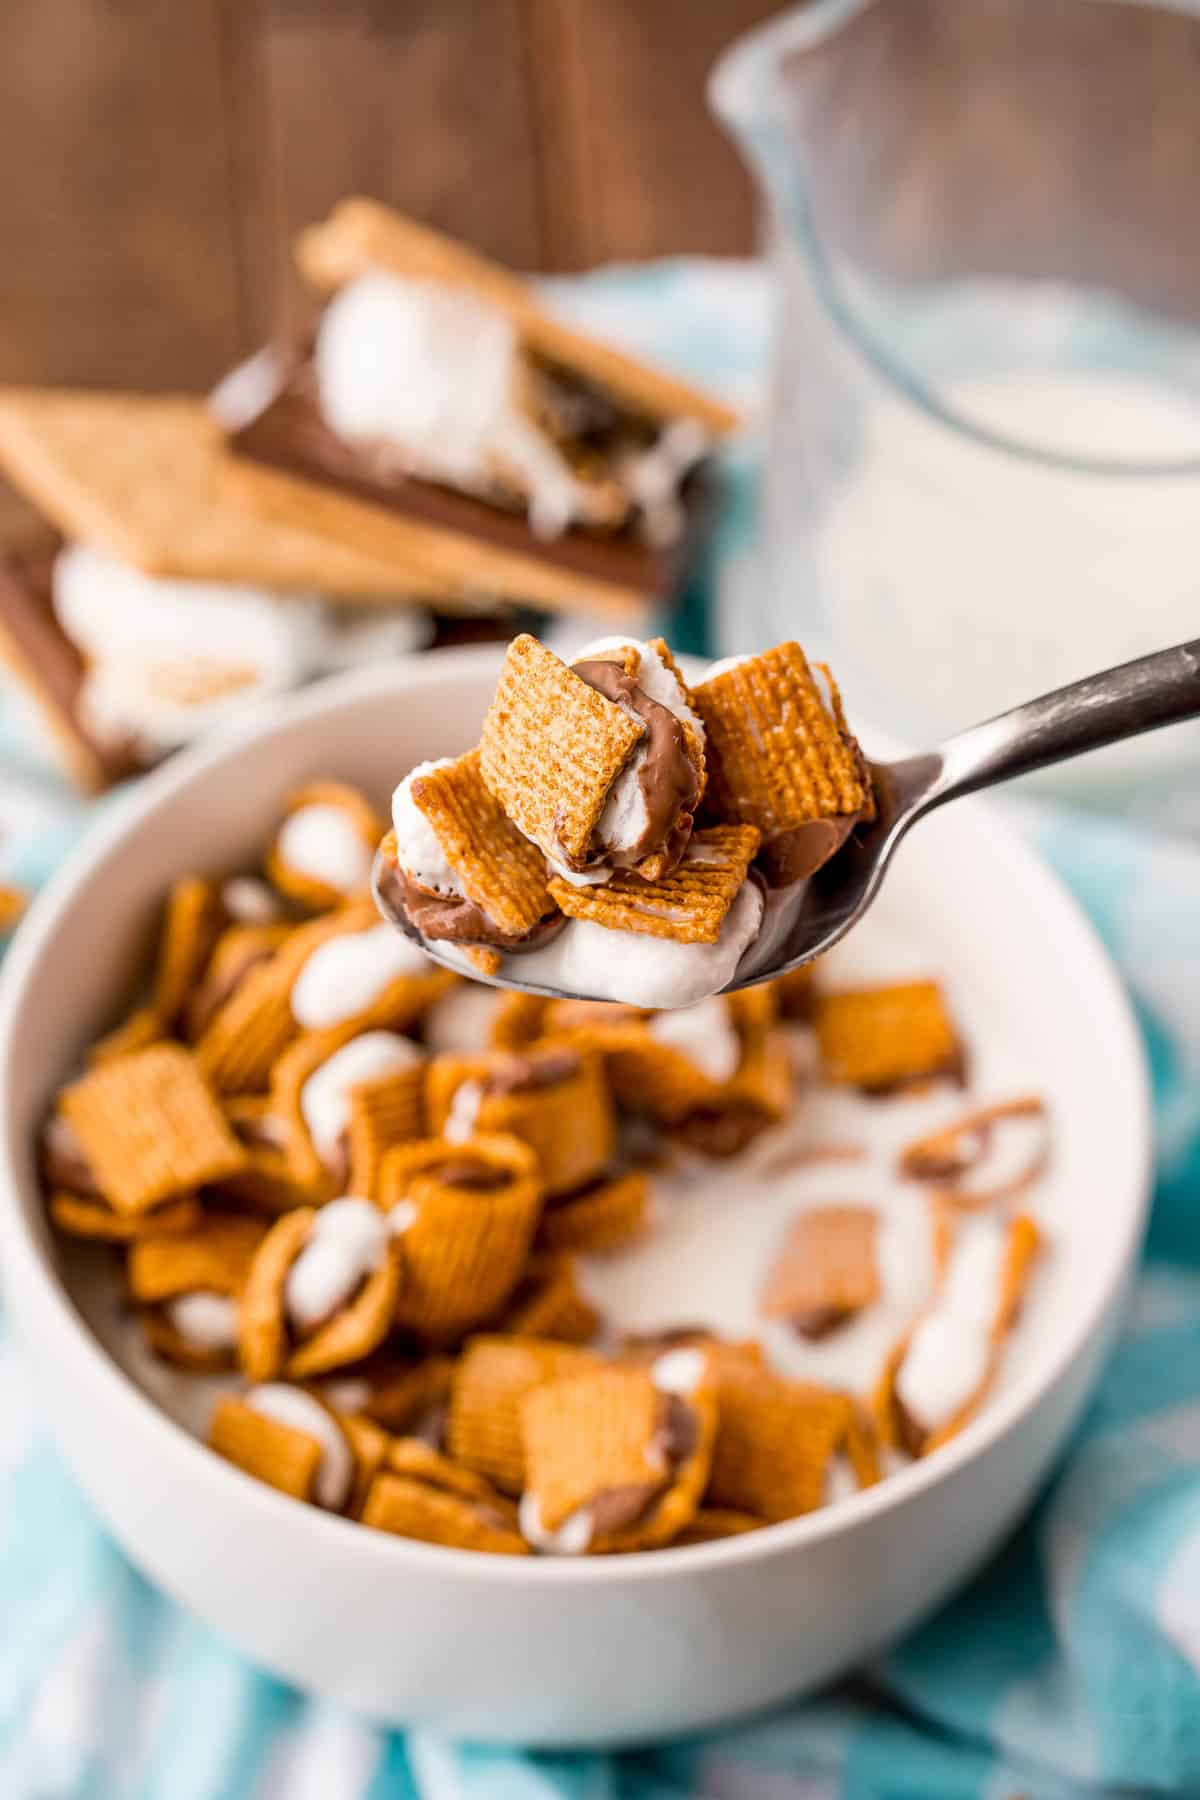 Tiny graham cracker, marshmallow, and chocolate chip sandwiches, on a spoon.